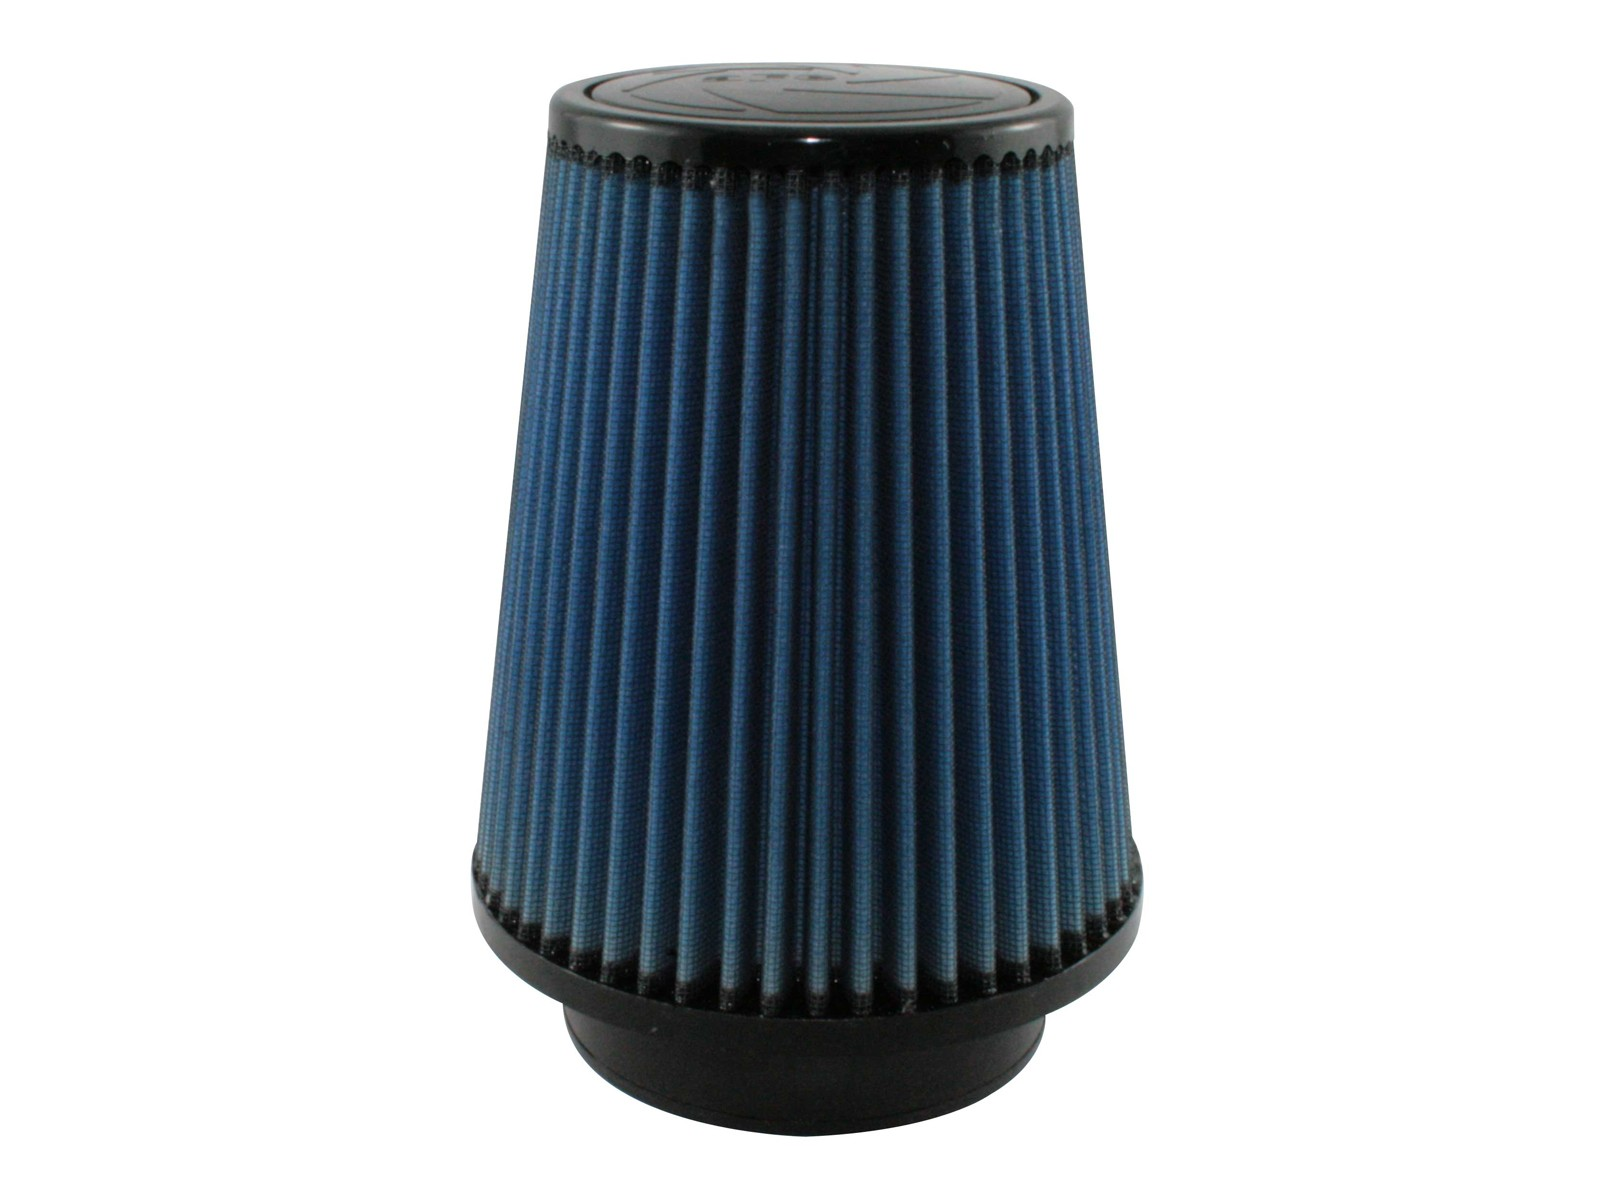 aFe POWER 24-45004 Magnum FLOW Pro 5R Air Filter